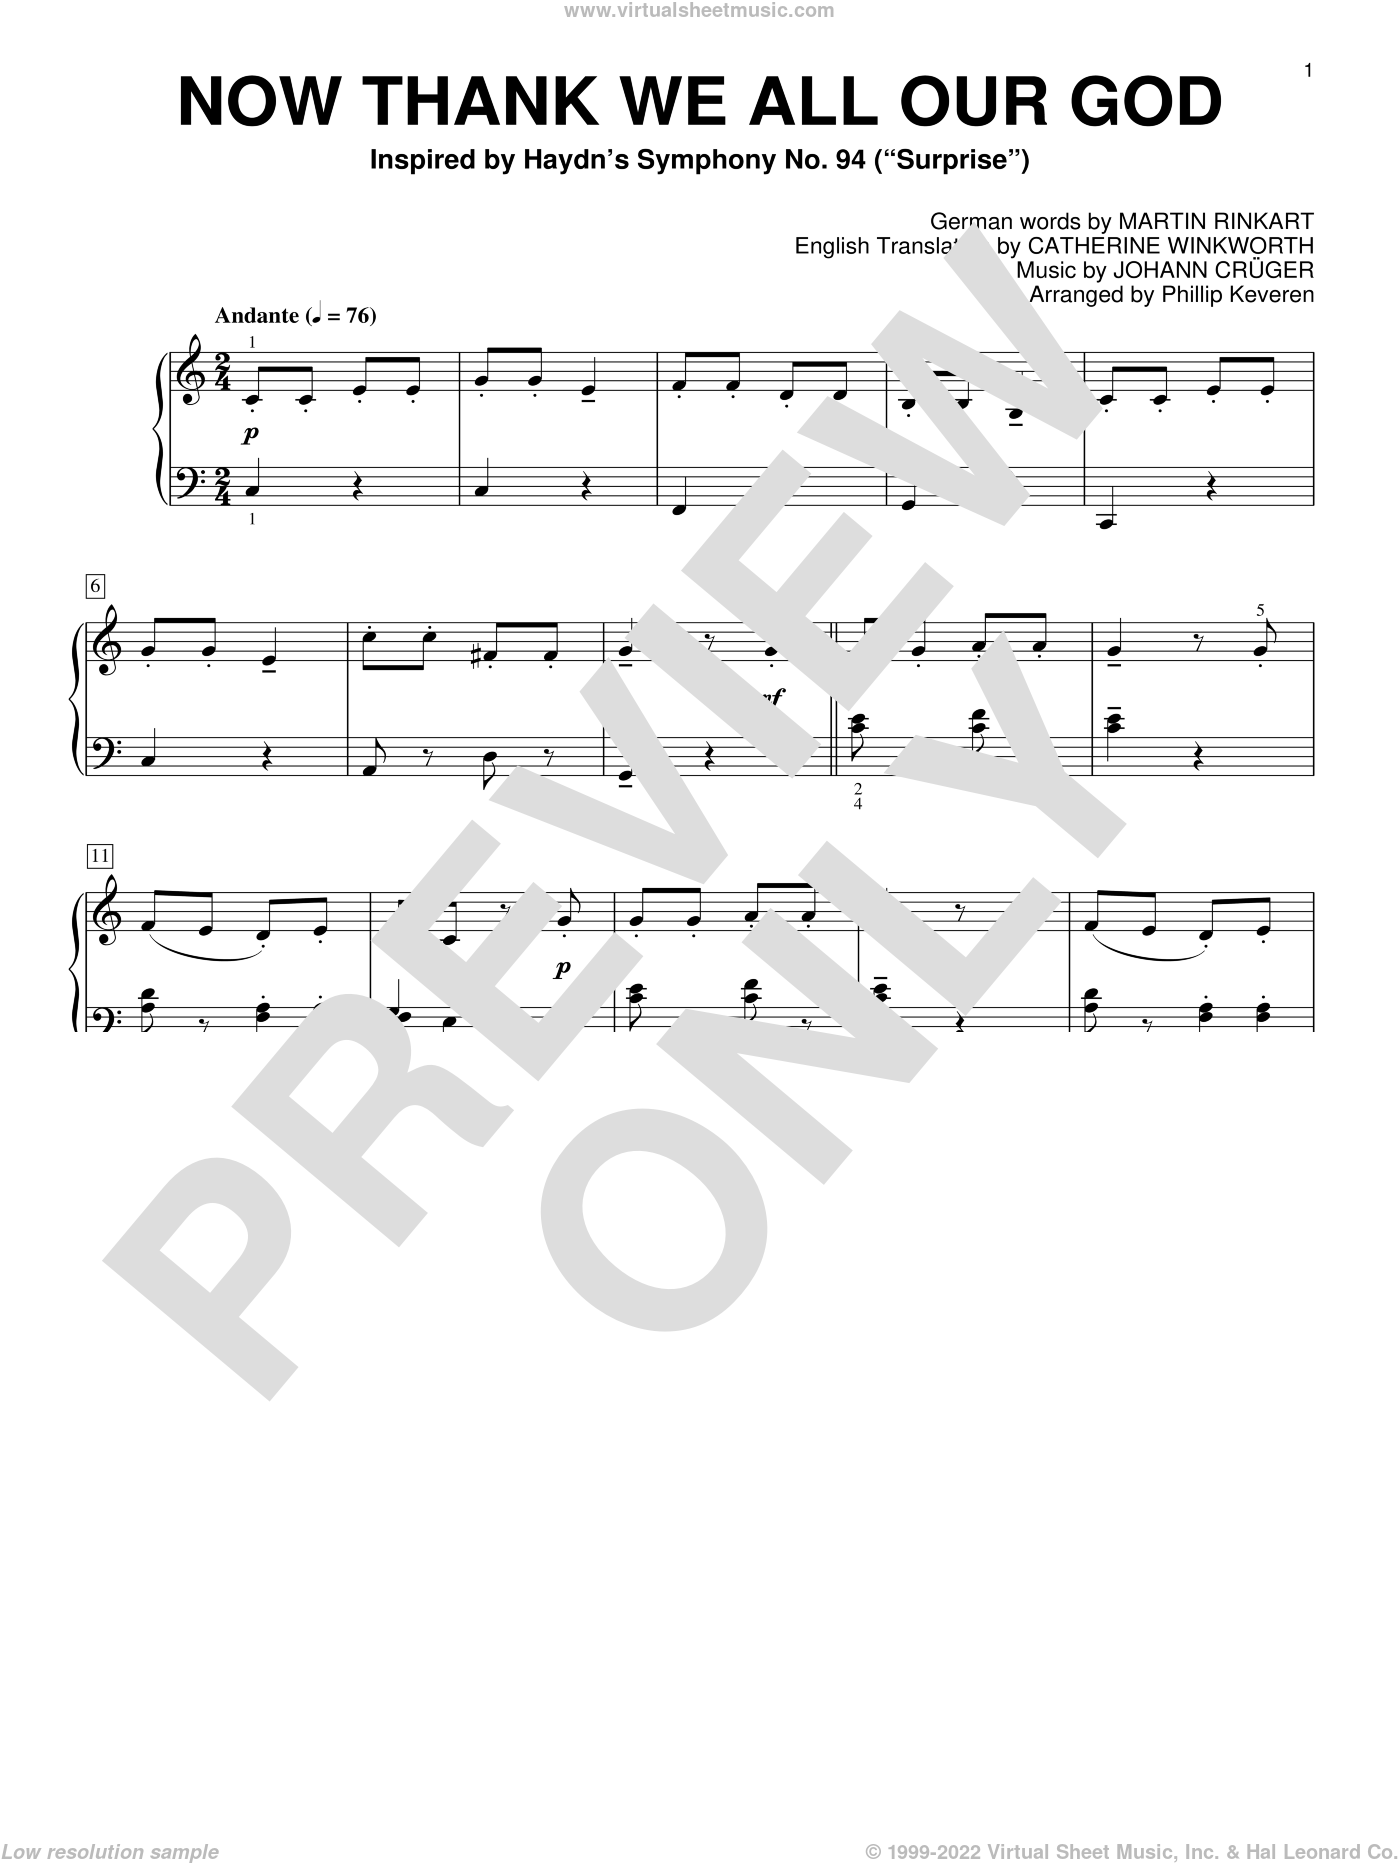 Now Thank We All Our God sheet music for piano solo by Martin Rinkart, Phillip Keveren and Johann Cruger. Score Image Preview.